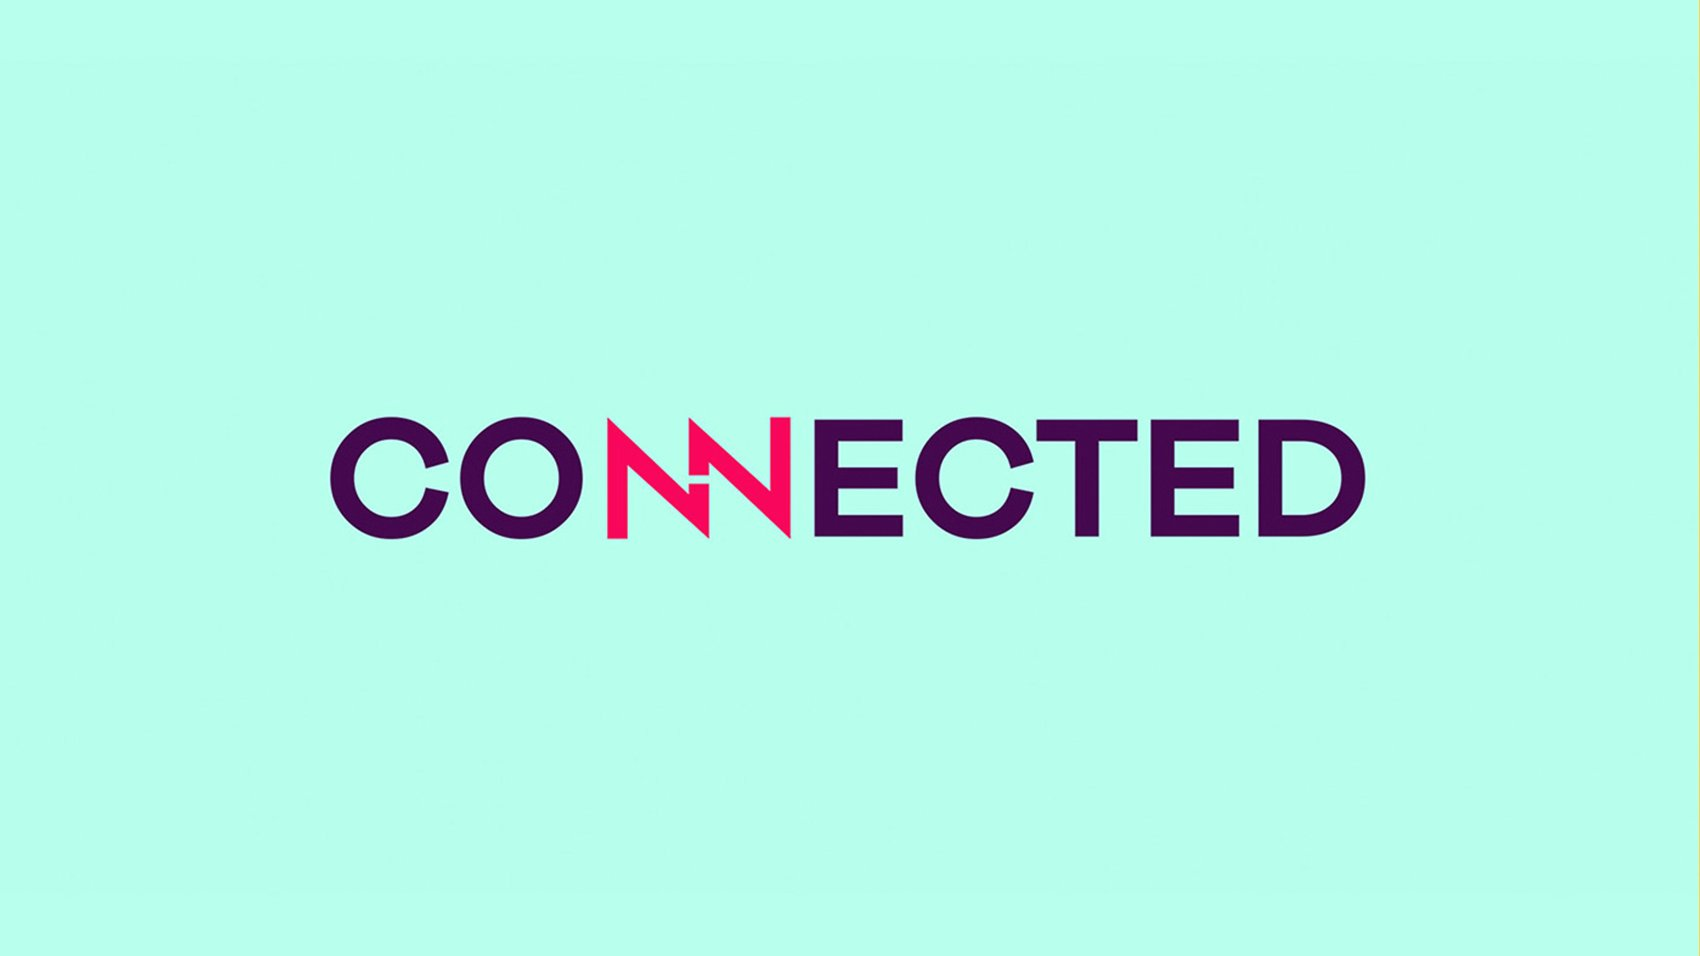 CONNECTED5 f